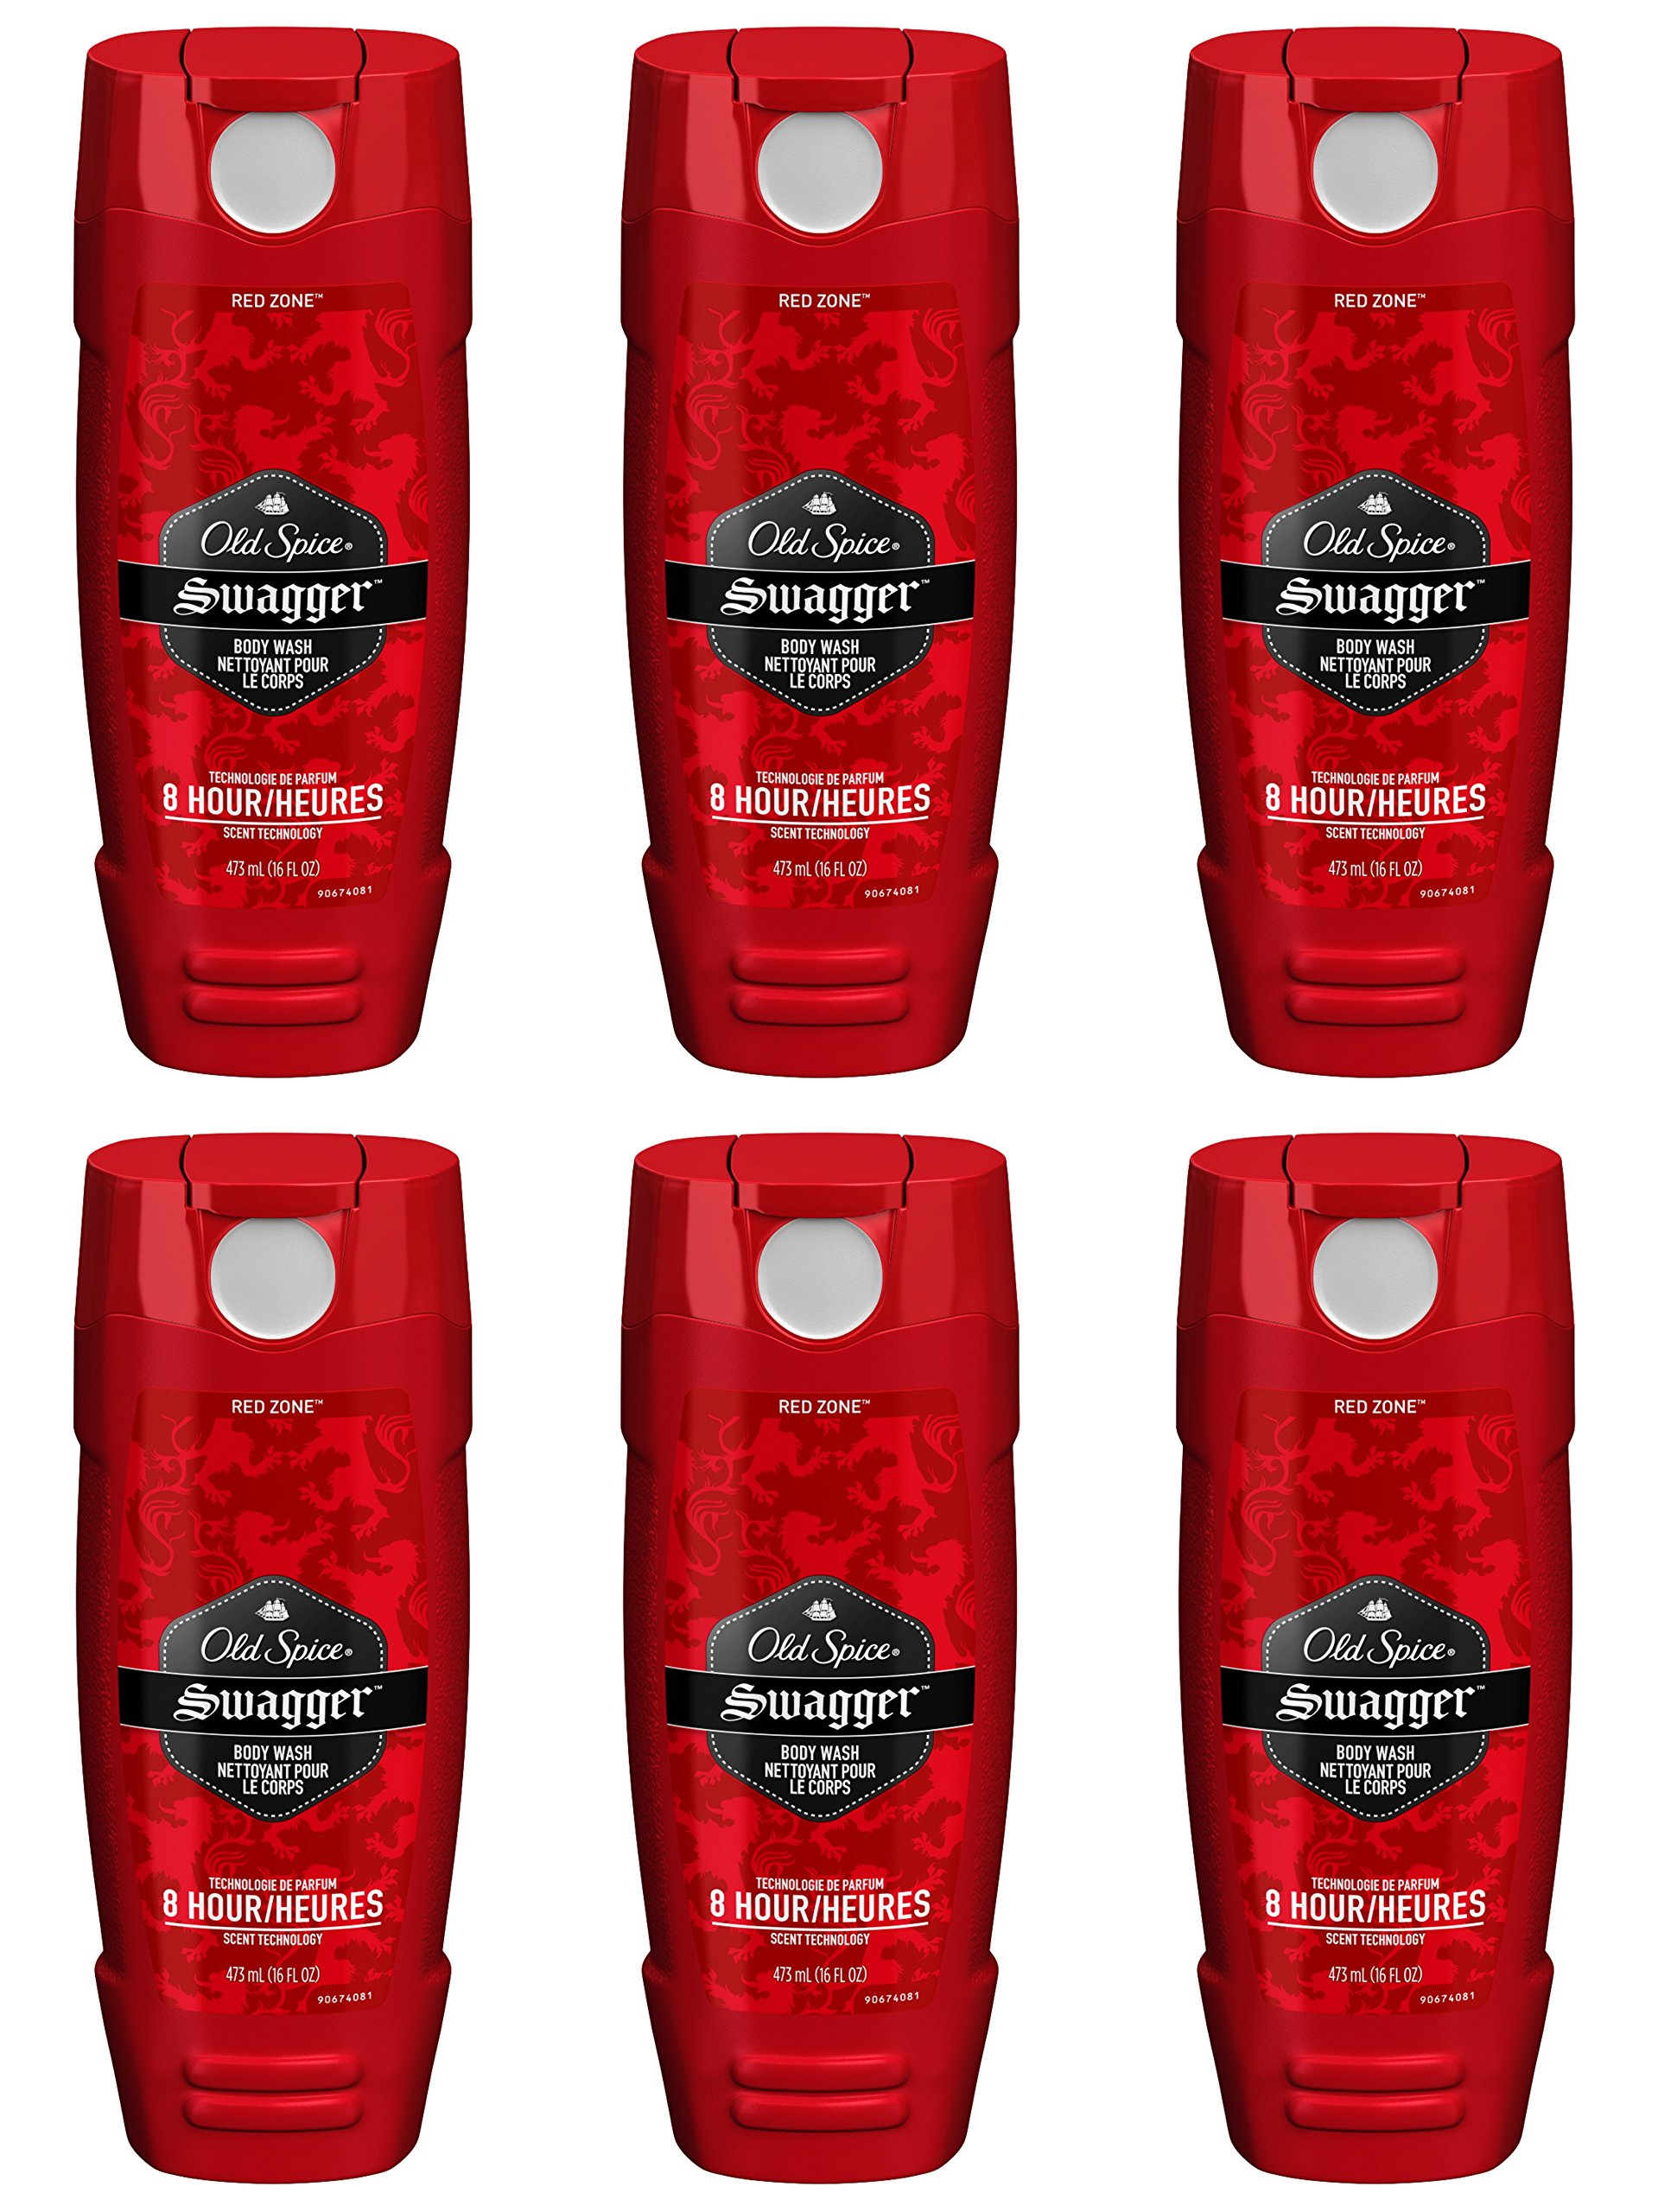 Old Spice Red Zone Men's Body Wash, Swagger, 16 Fluid Ounce (Pack of 6)